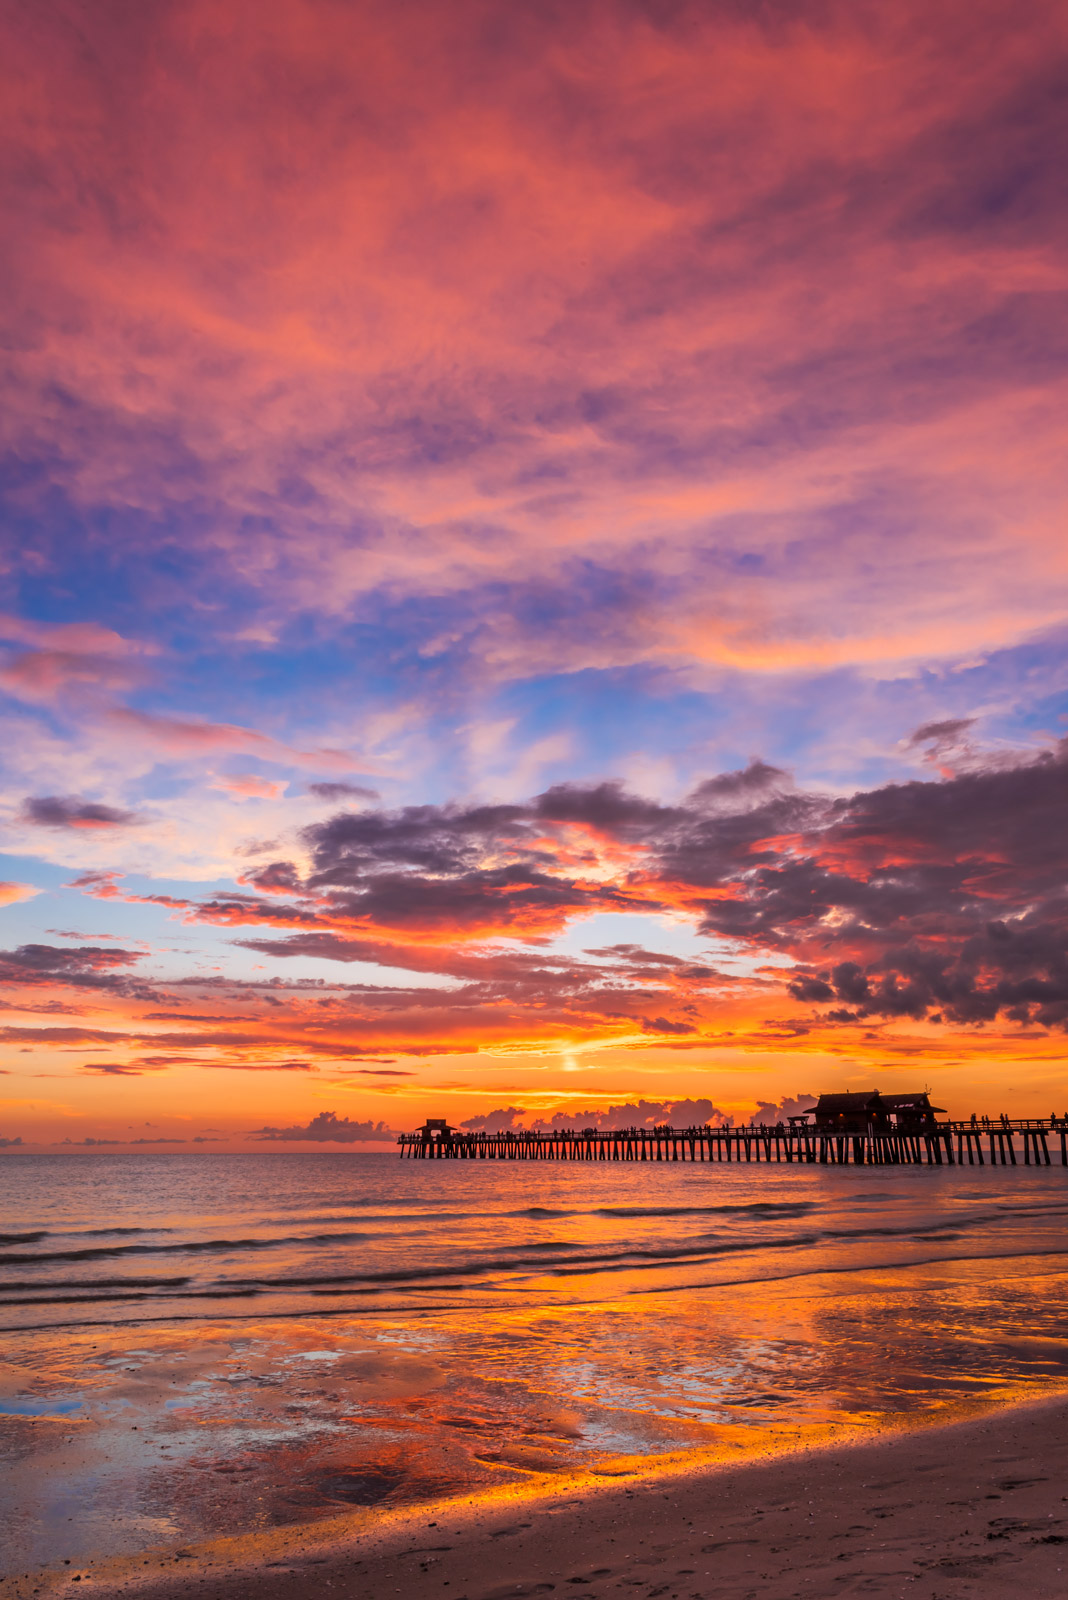 Florida, Naples, Naples Pier, sunset, limited edition, photograph, fine art, landscape, gulf coast, photo